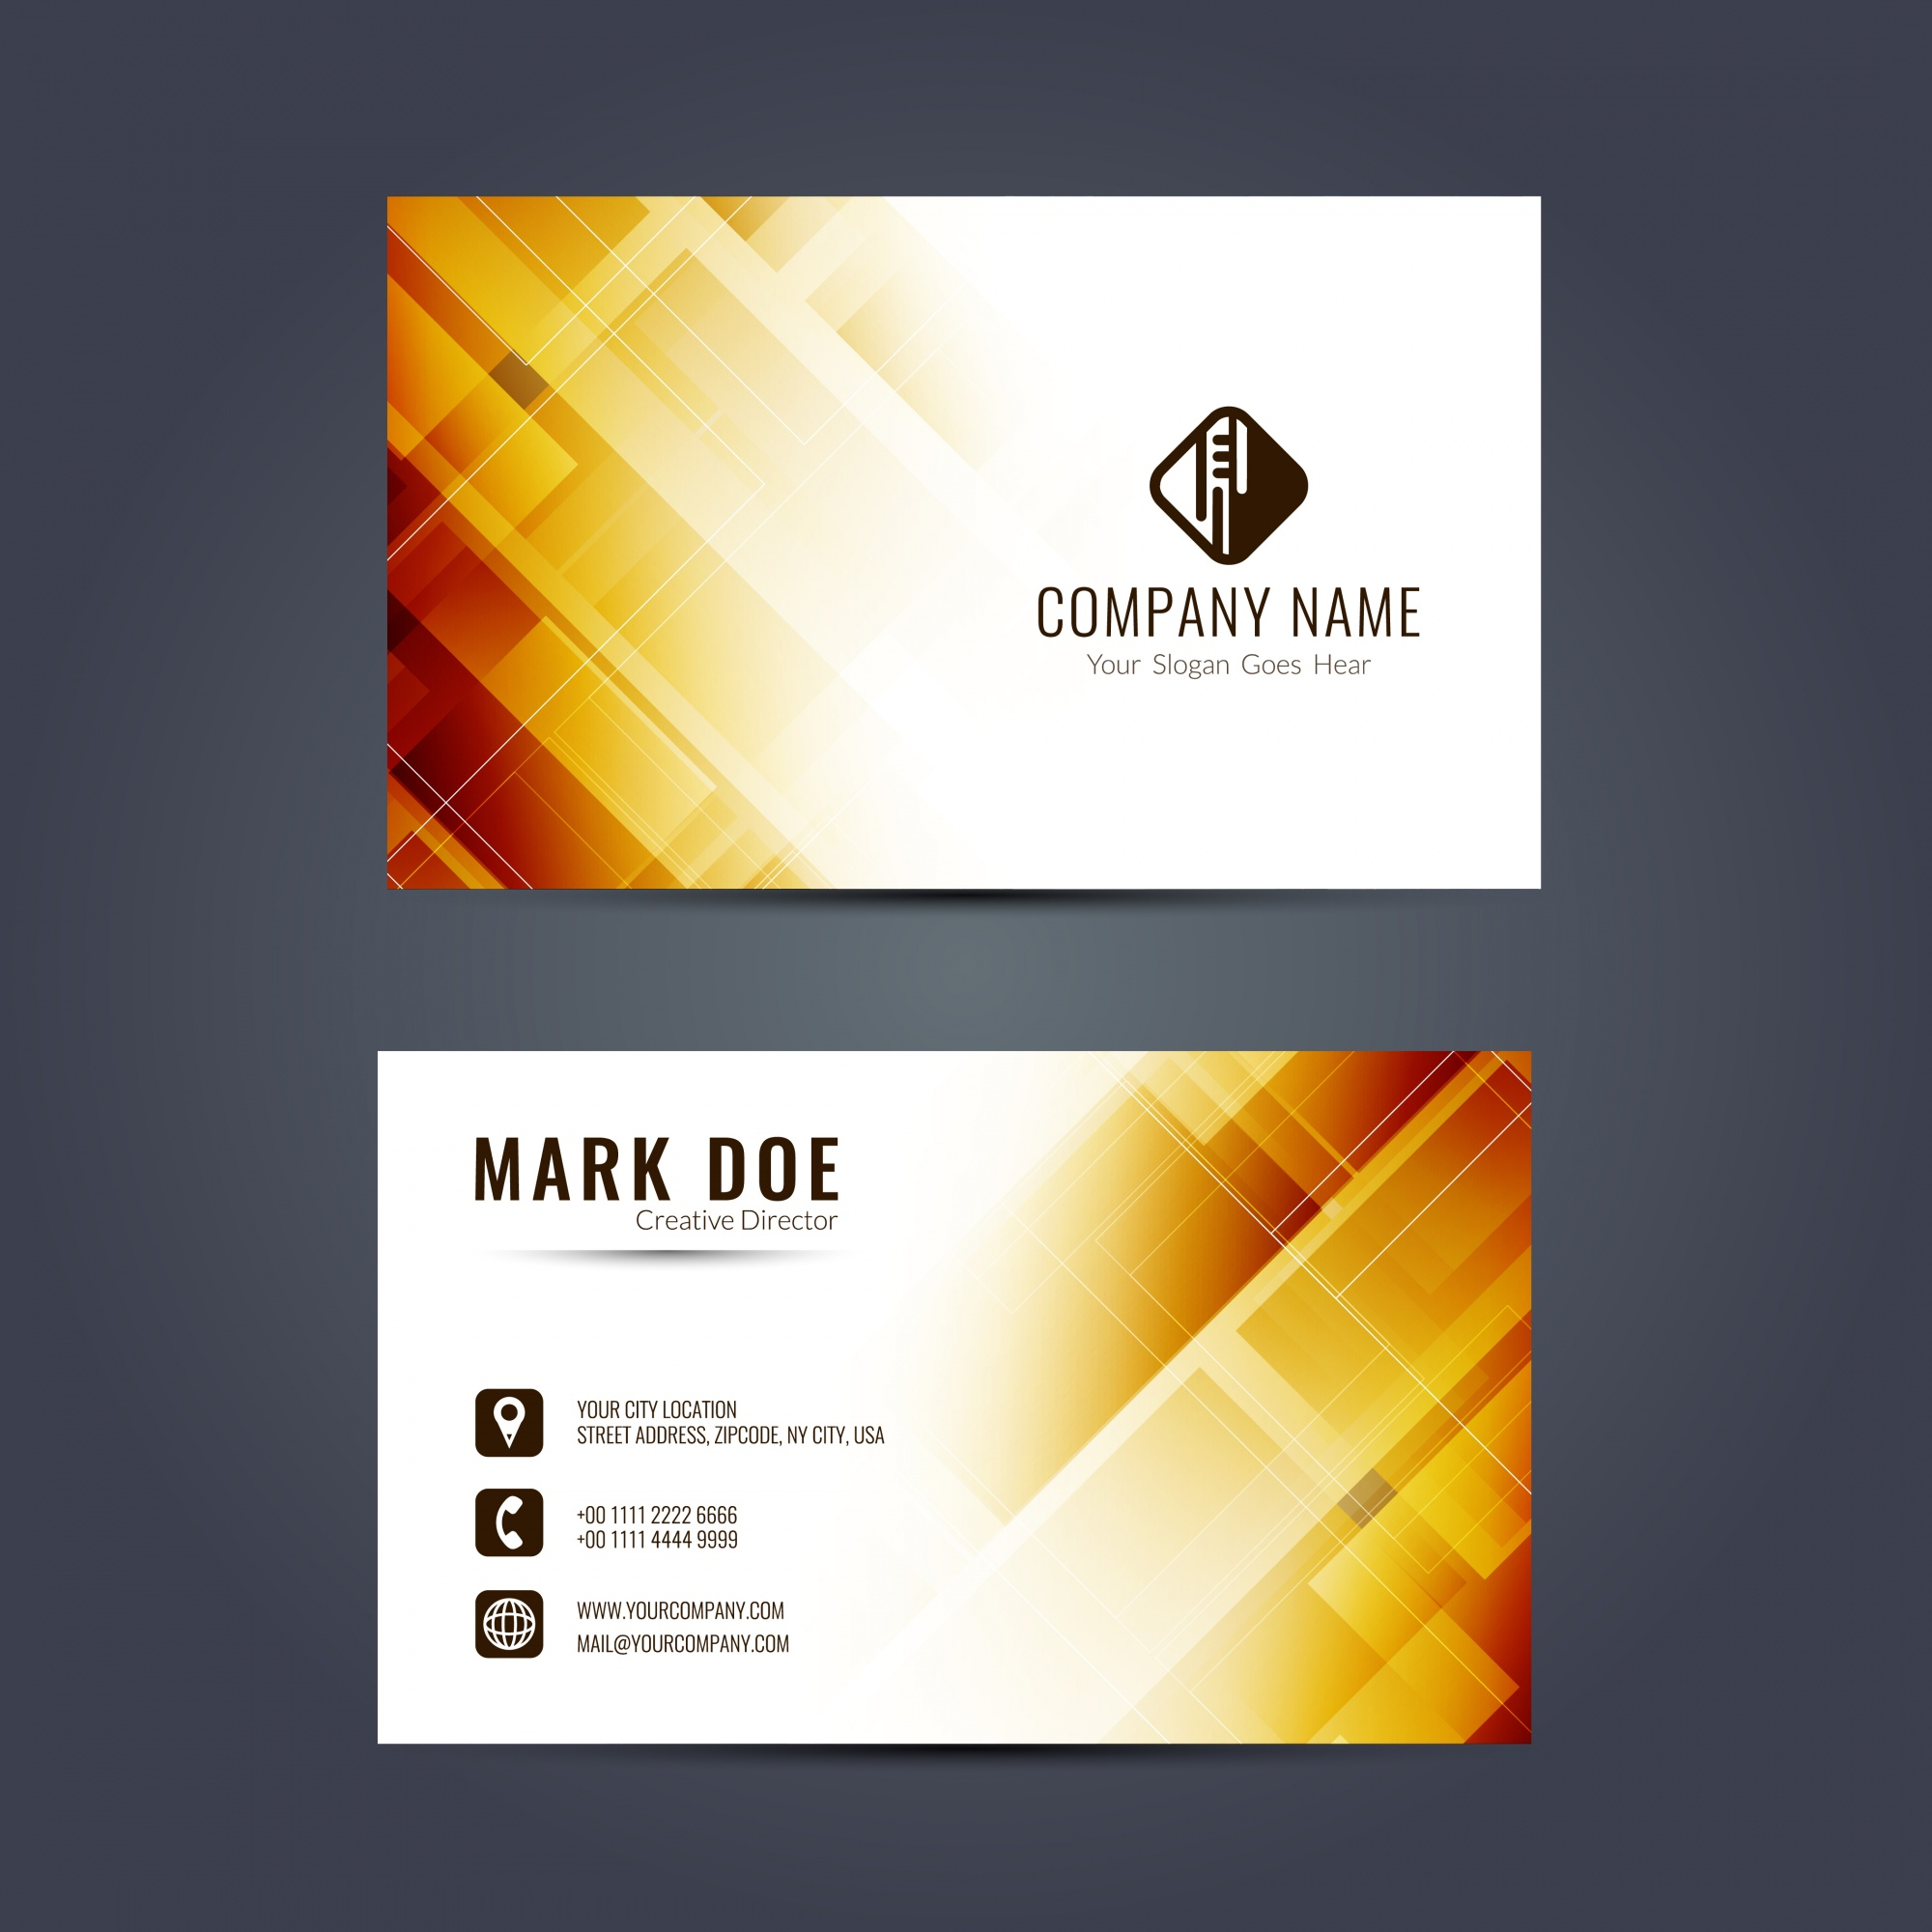 Business card with yellow geometric shapes